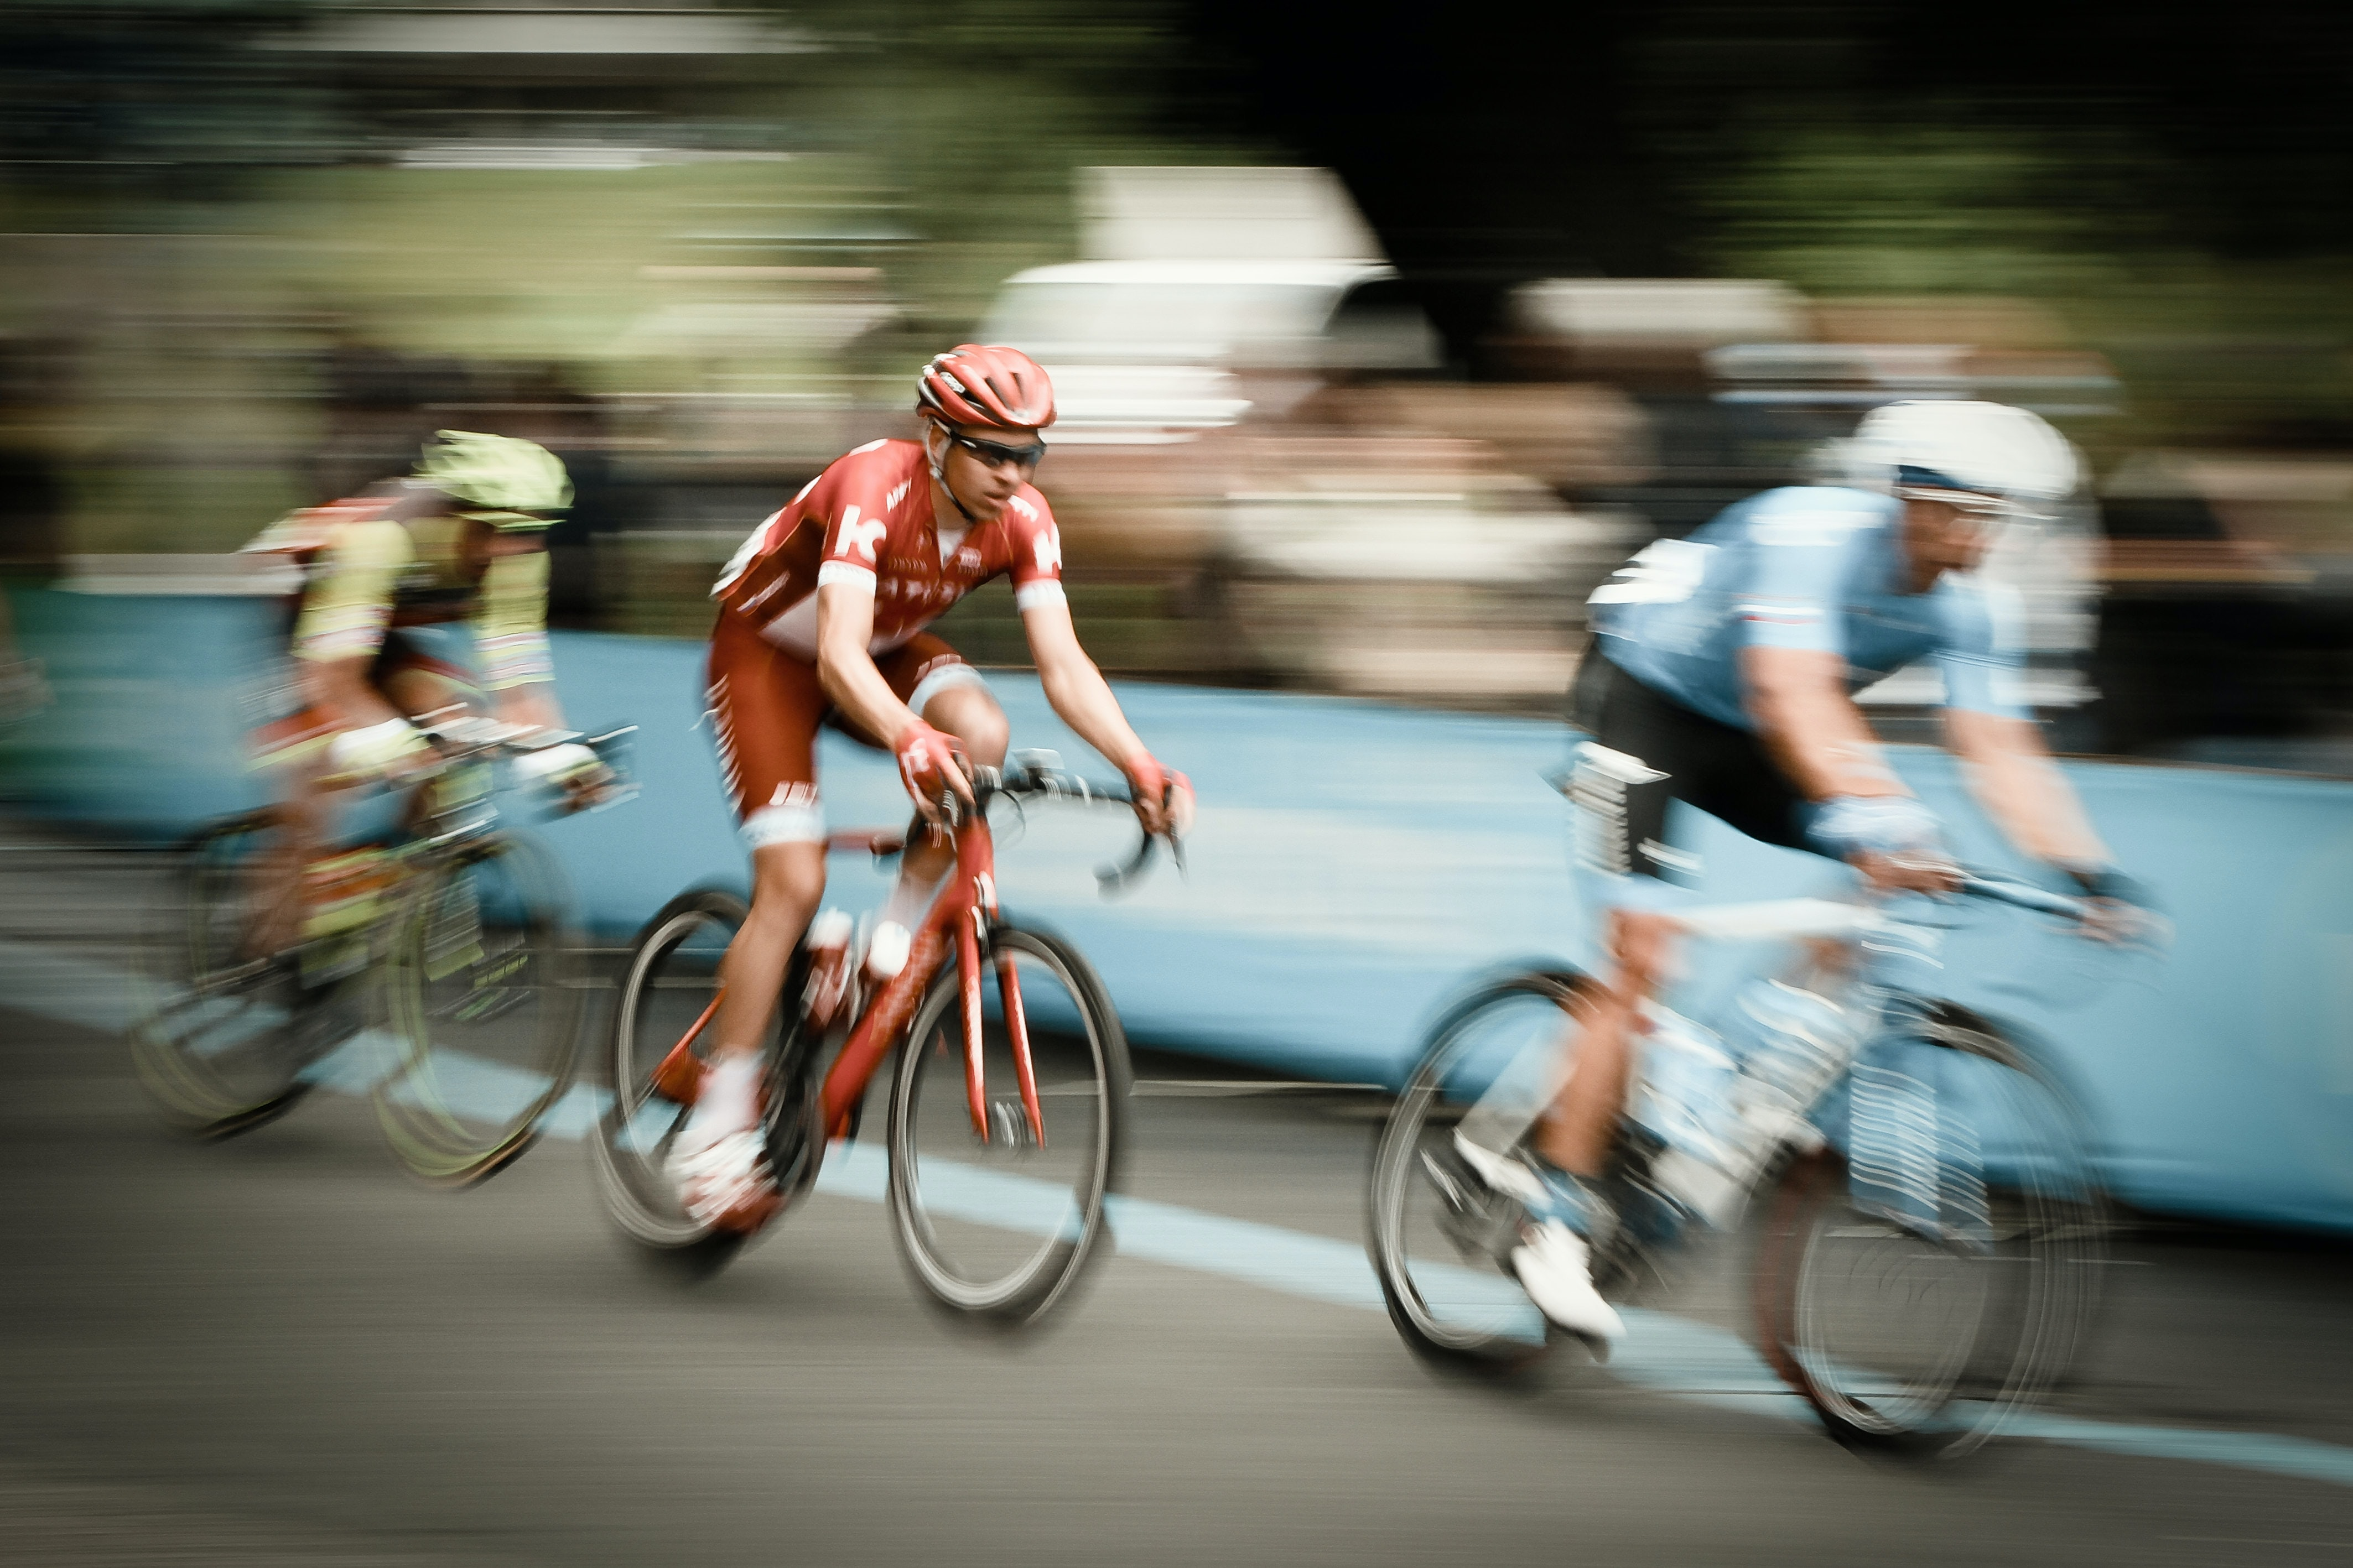 Three cyclists travel through Metropolitan City of Turin in the middle of a bike race